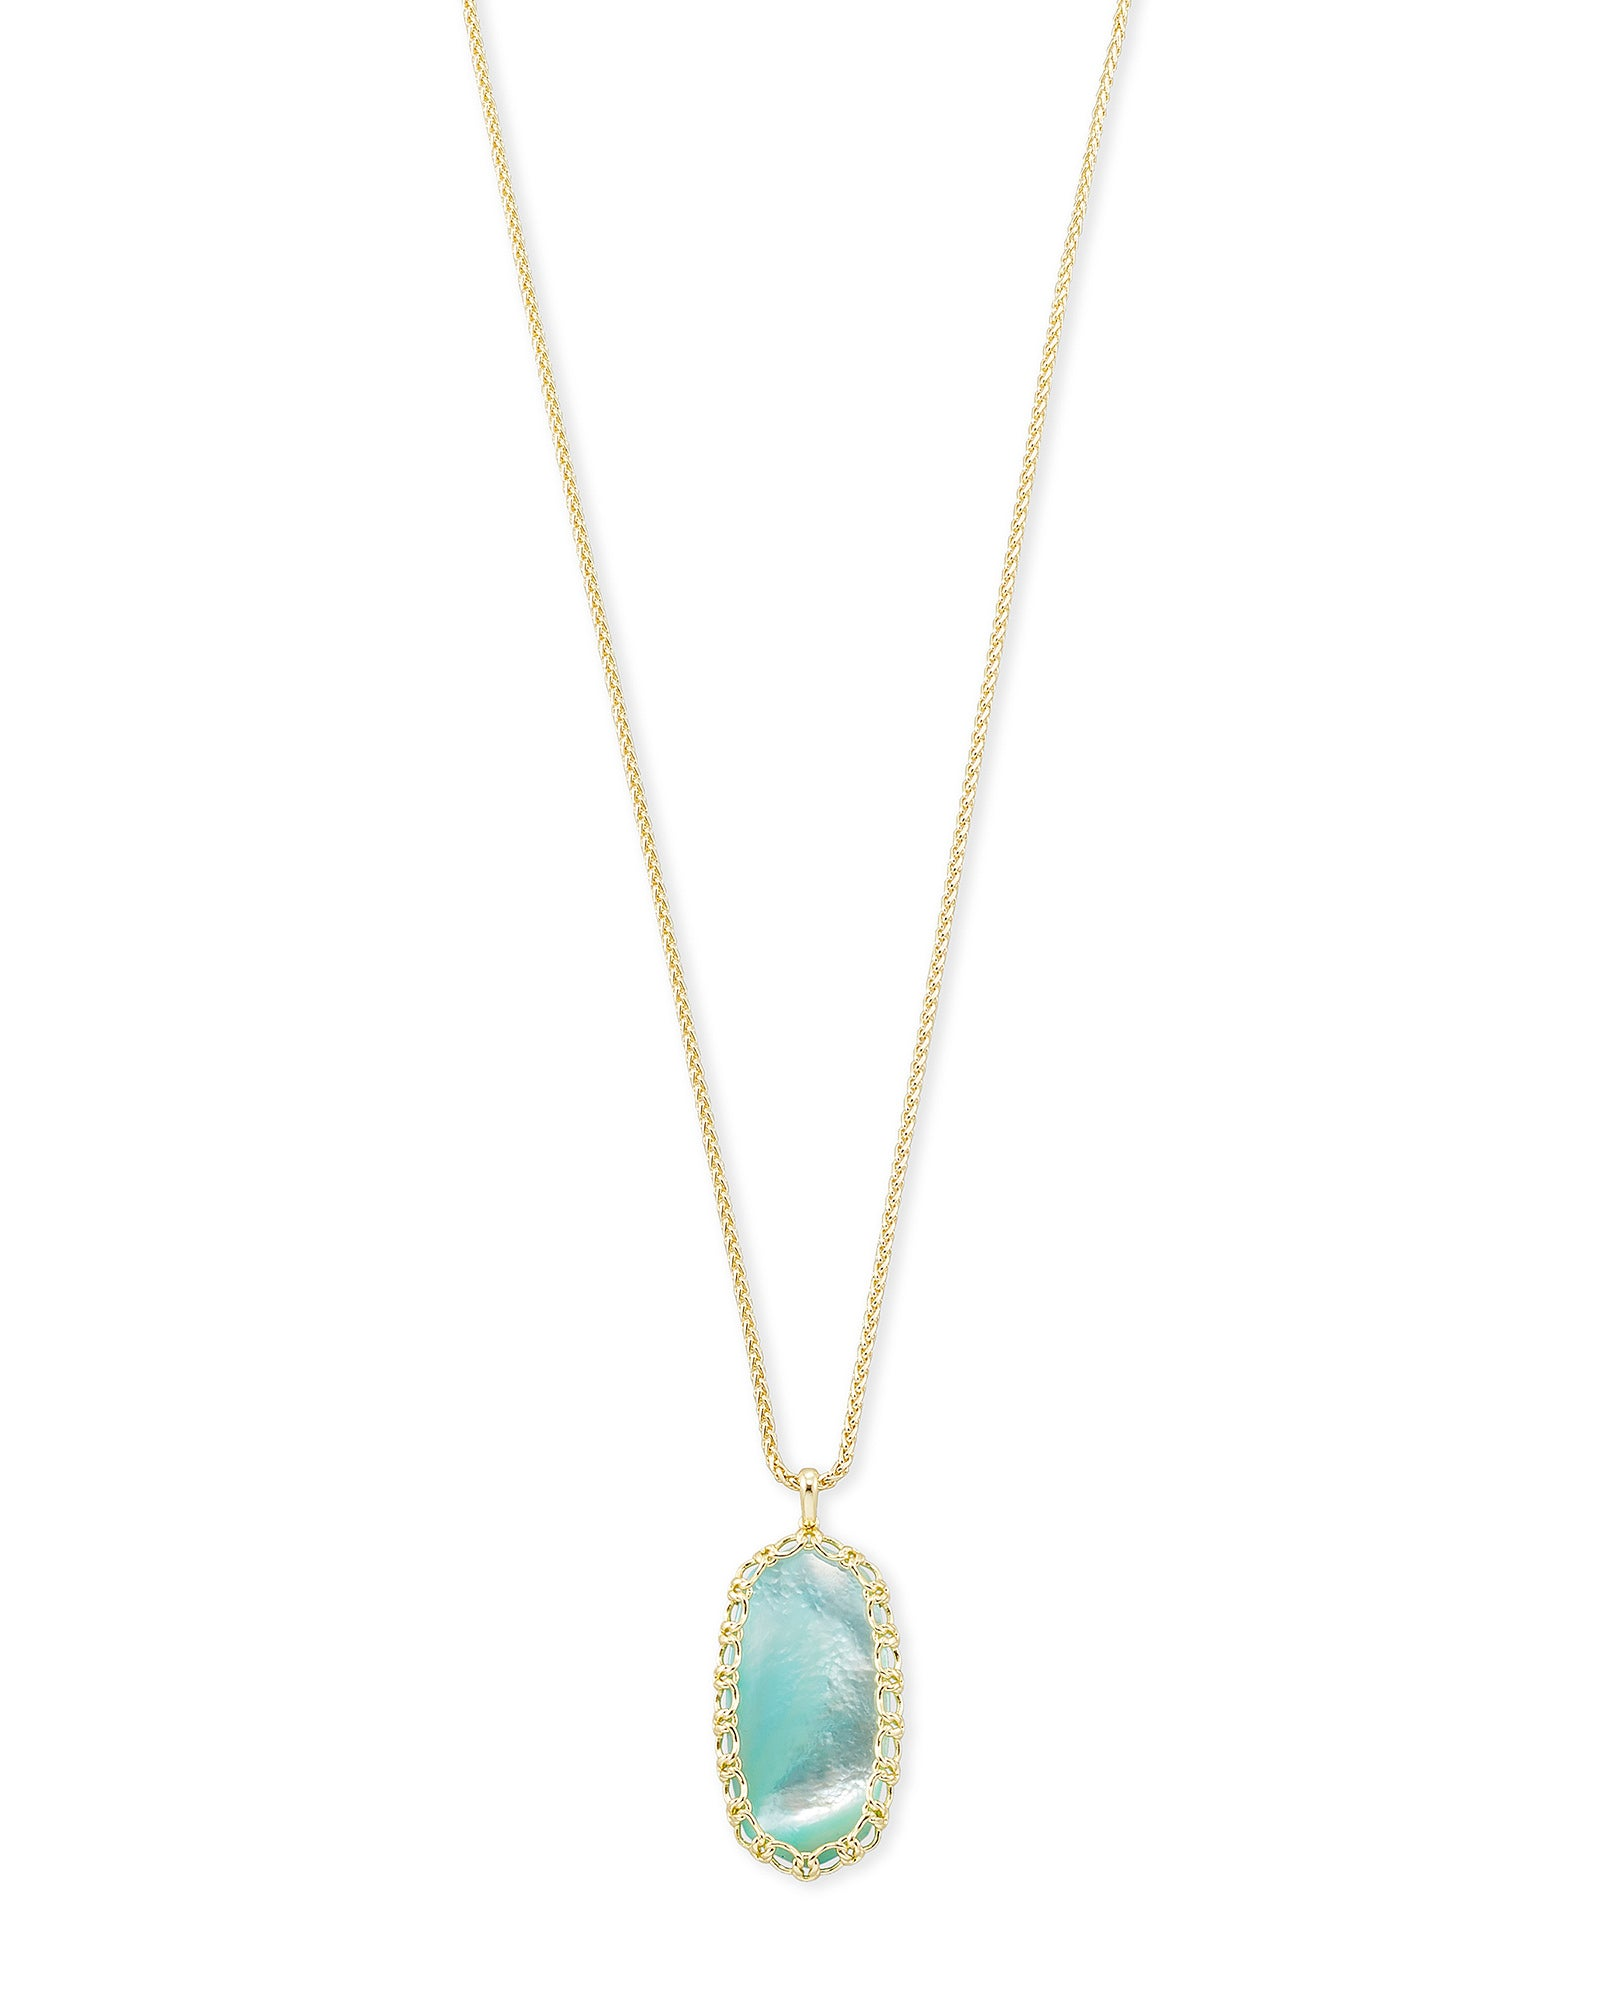 Reid Macrame Gold Aqua Illusion Necklace